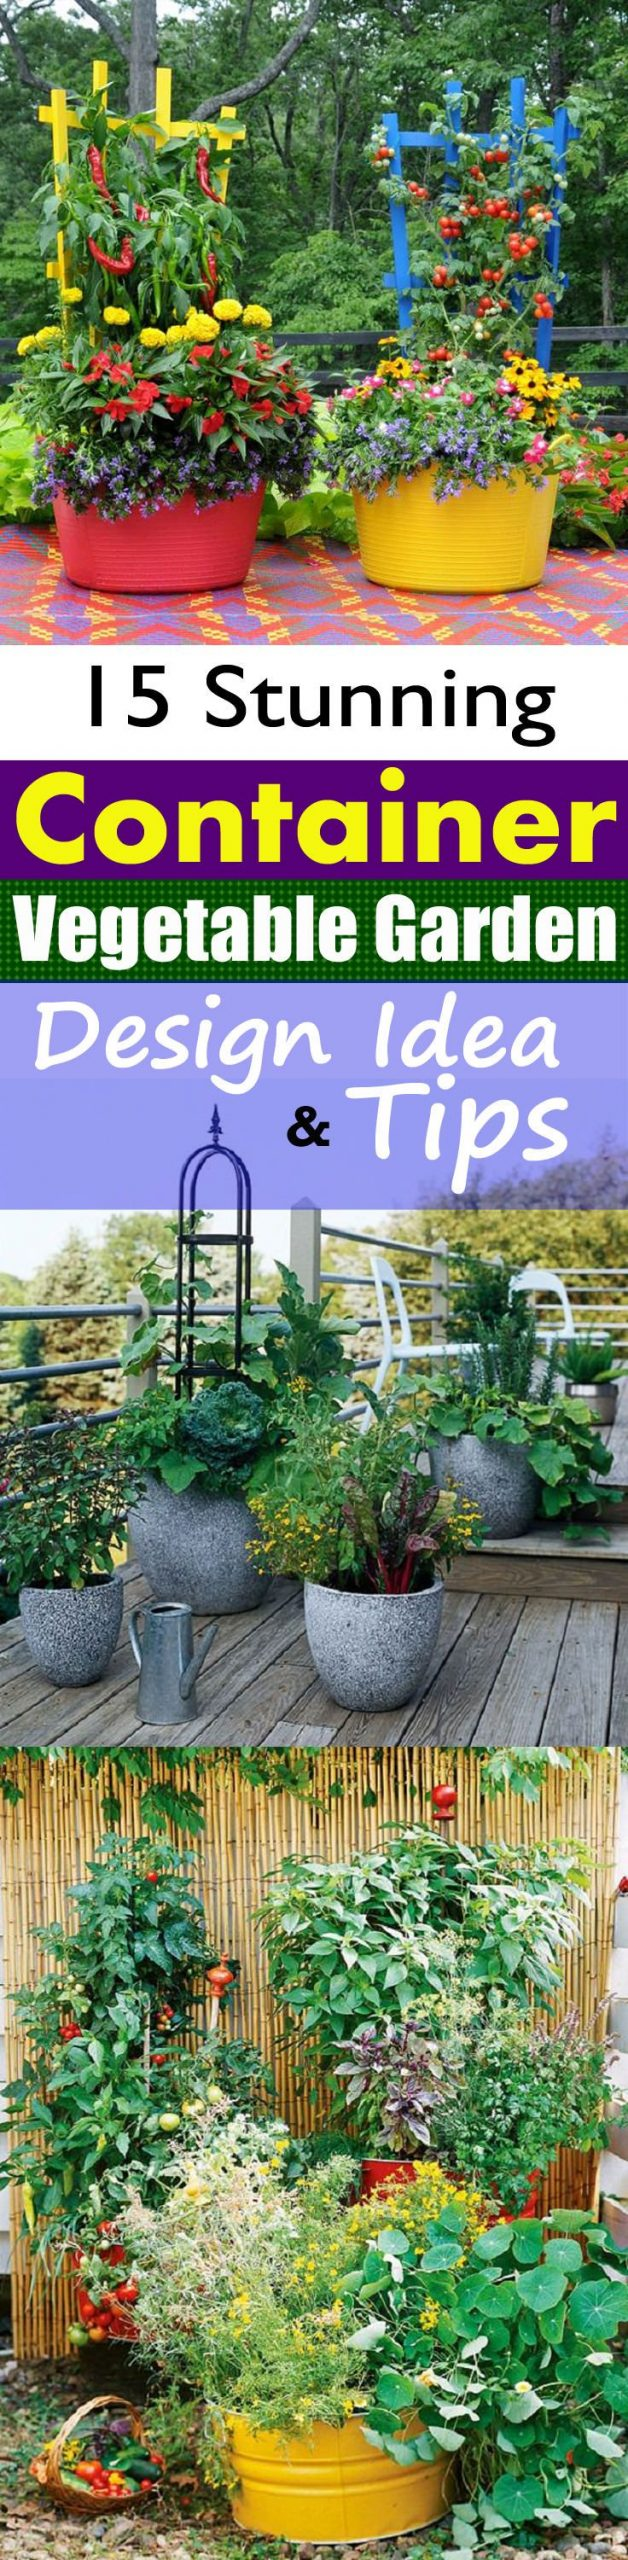 Stunning Potted Vegetable Garden Ideas